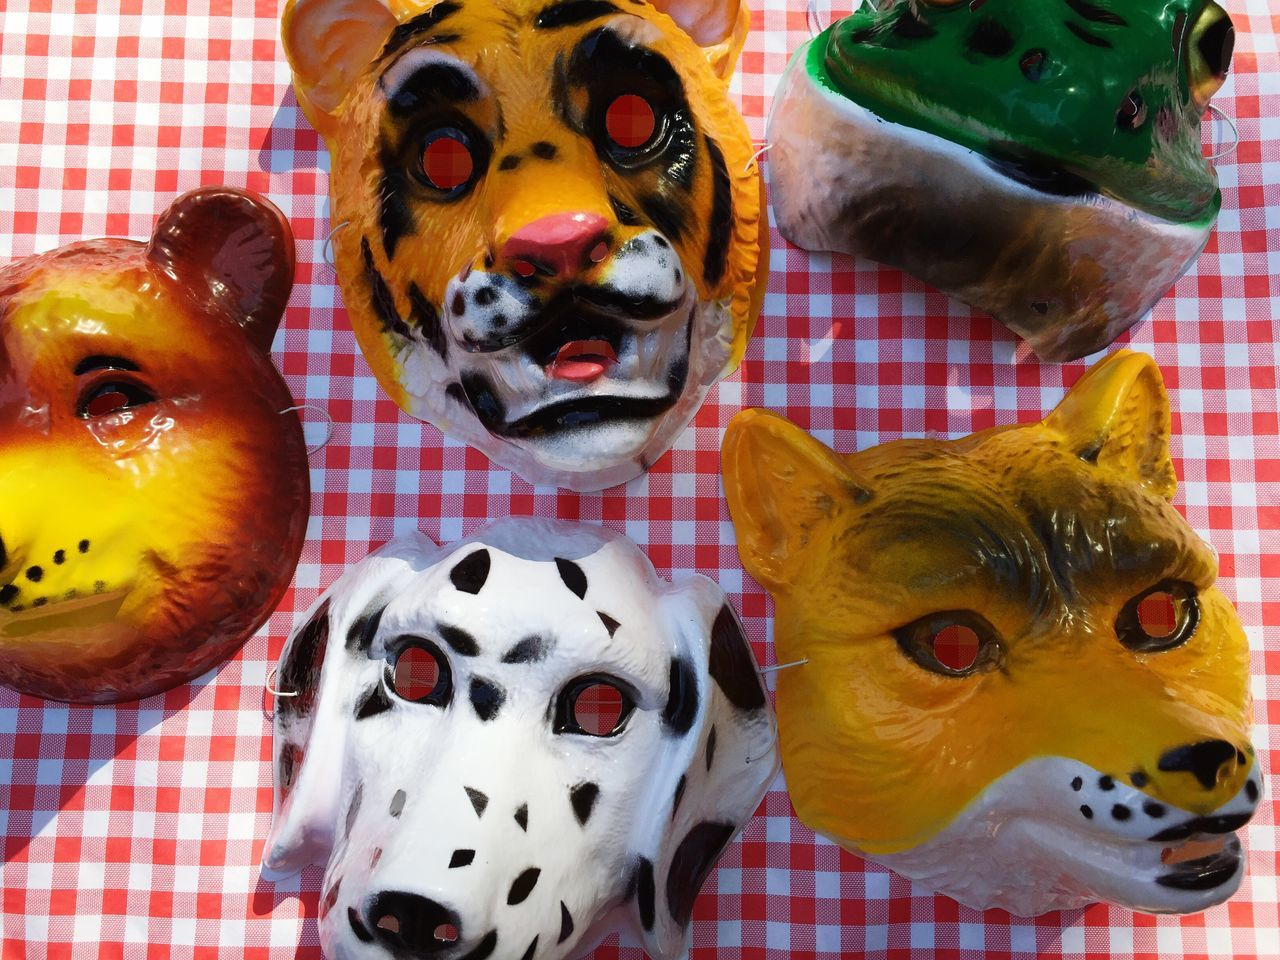 Close-Up High Angle View Of Animal Masks On Table